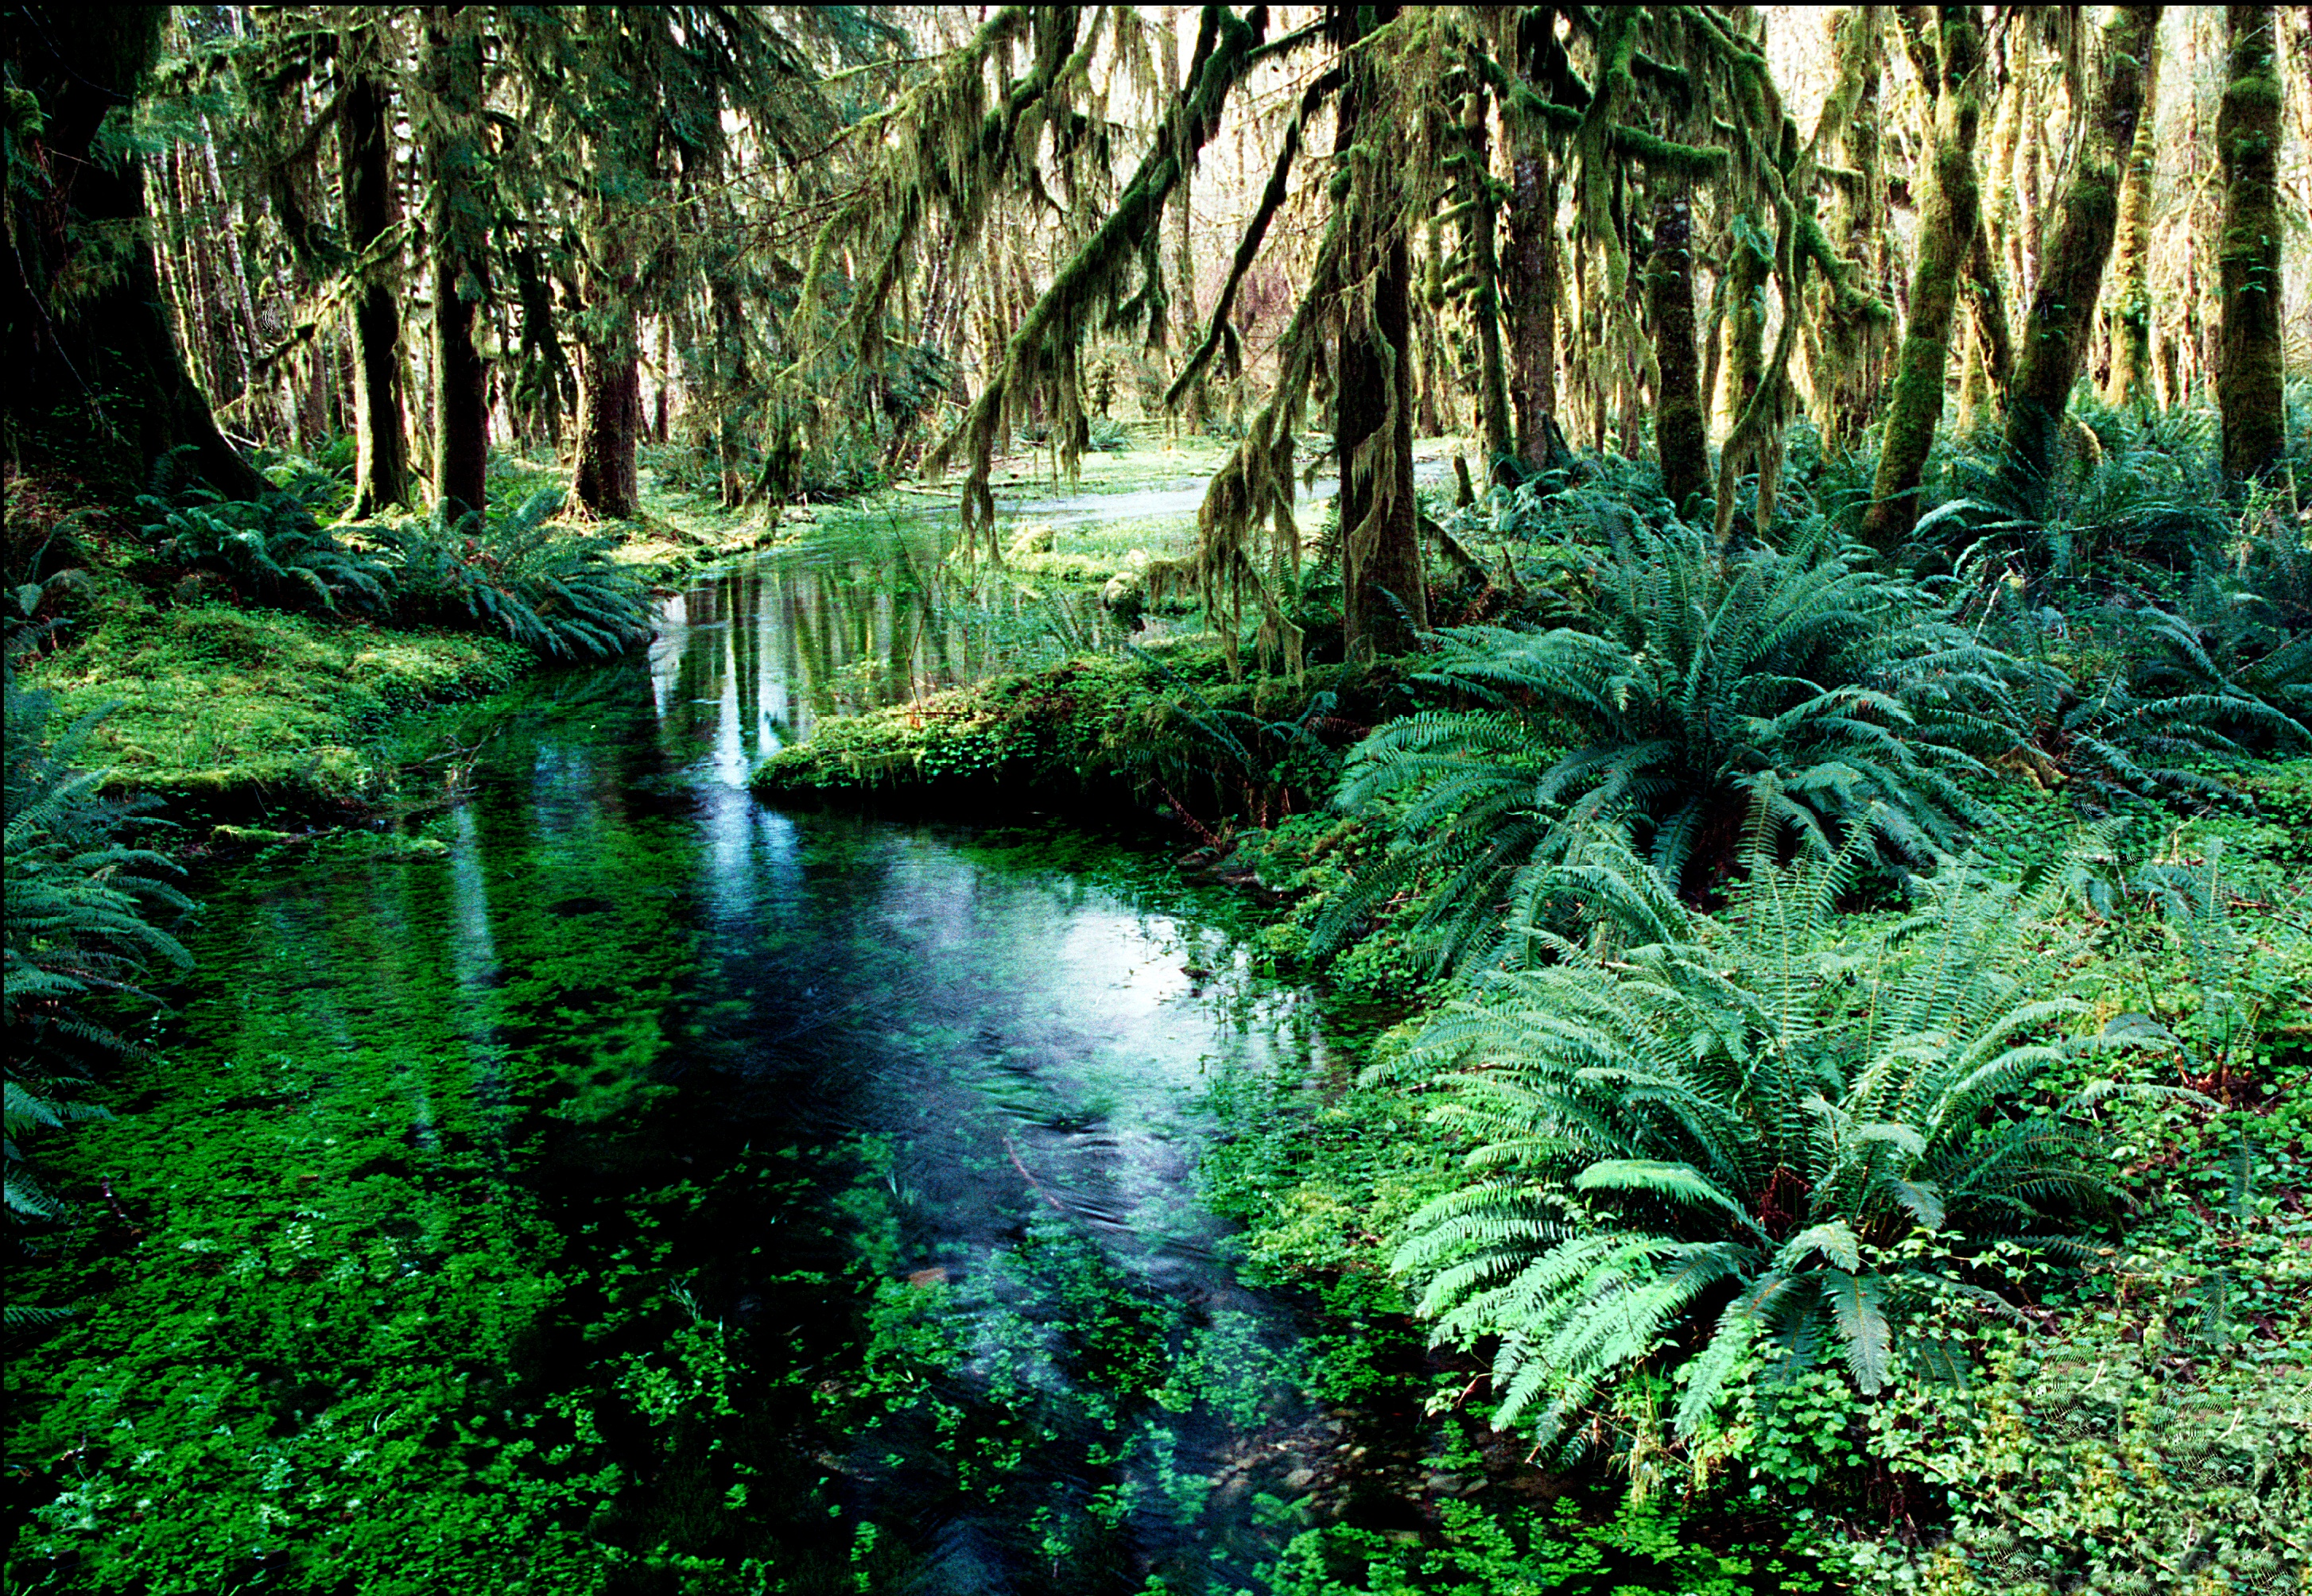 Photo of rainforest with a stream running through it - Photo copyright property of UCAR, Photo by Gary Anthes